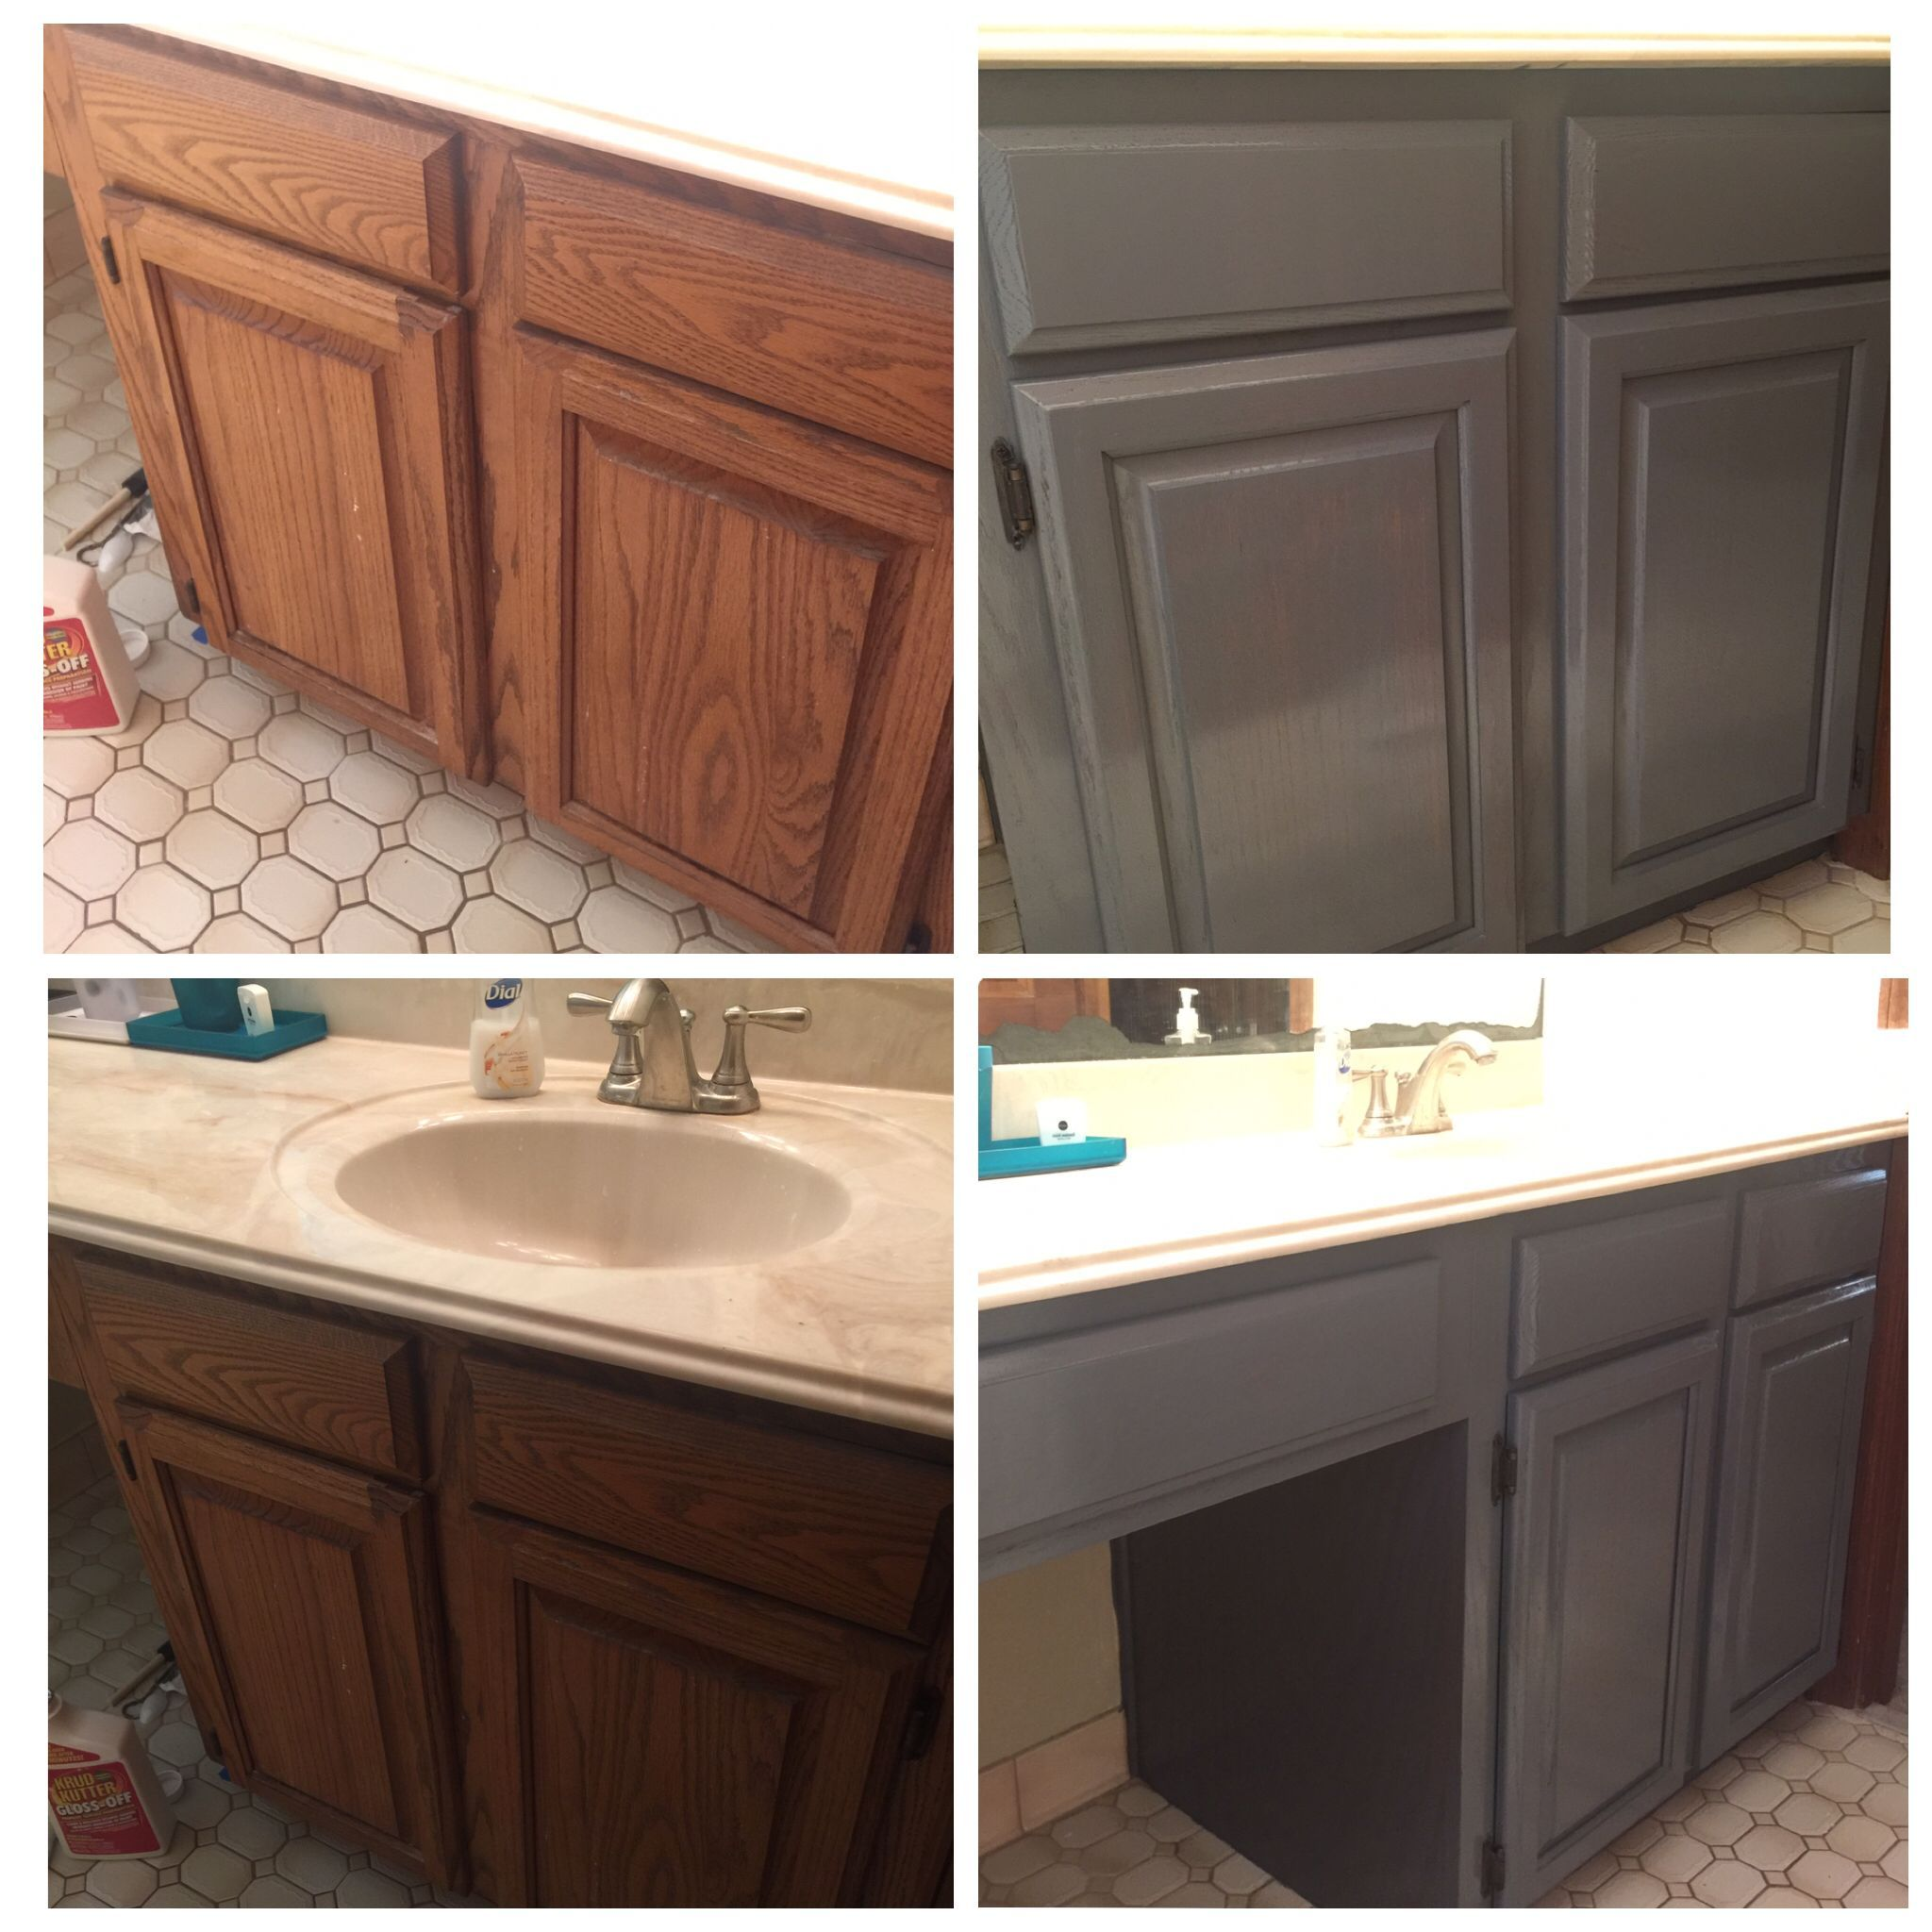 Before And After Using Varathane Weathered Grey Over 1987 Oak Cabinets Used Stained Kitchen Cabinets Gel Stain Kitchen Cabinets Diy Kitchen Cabinets Painting